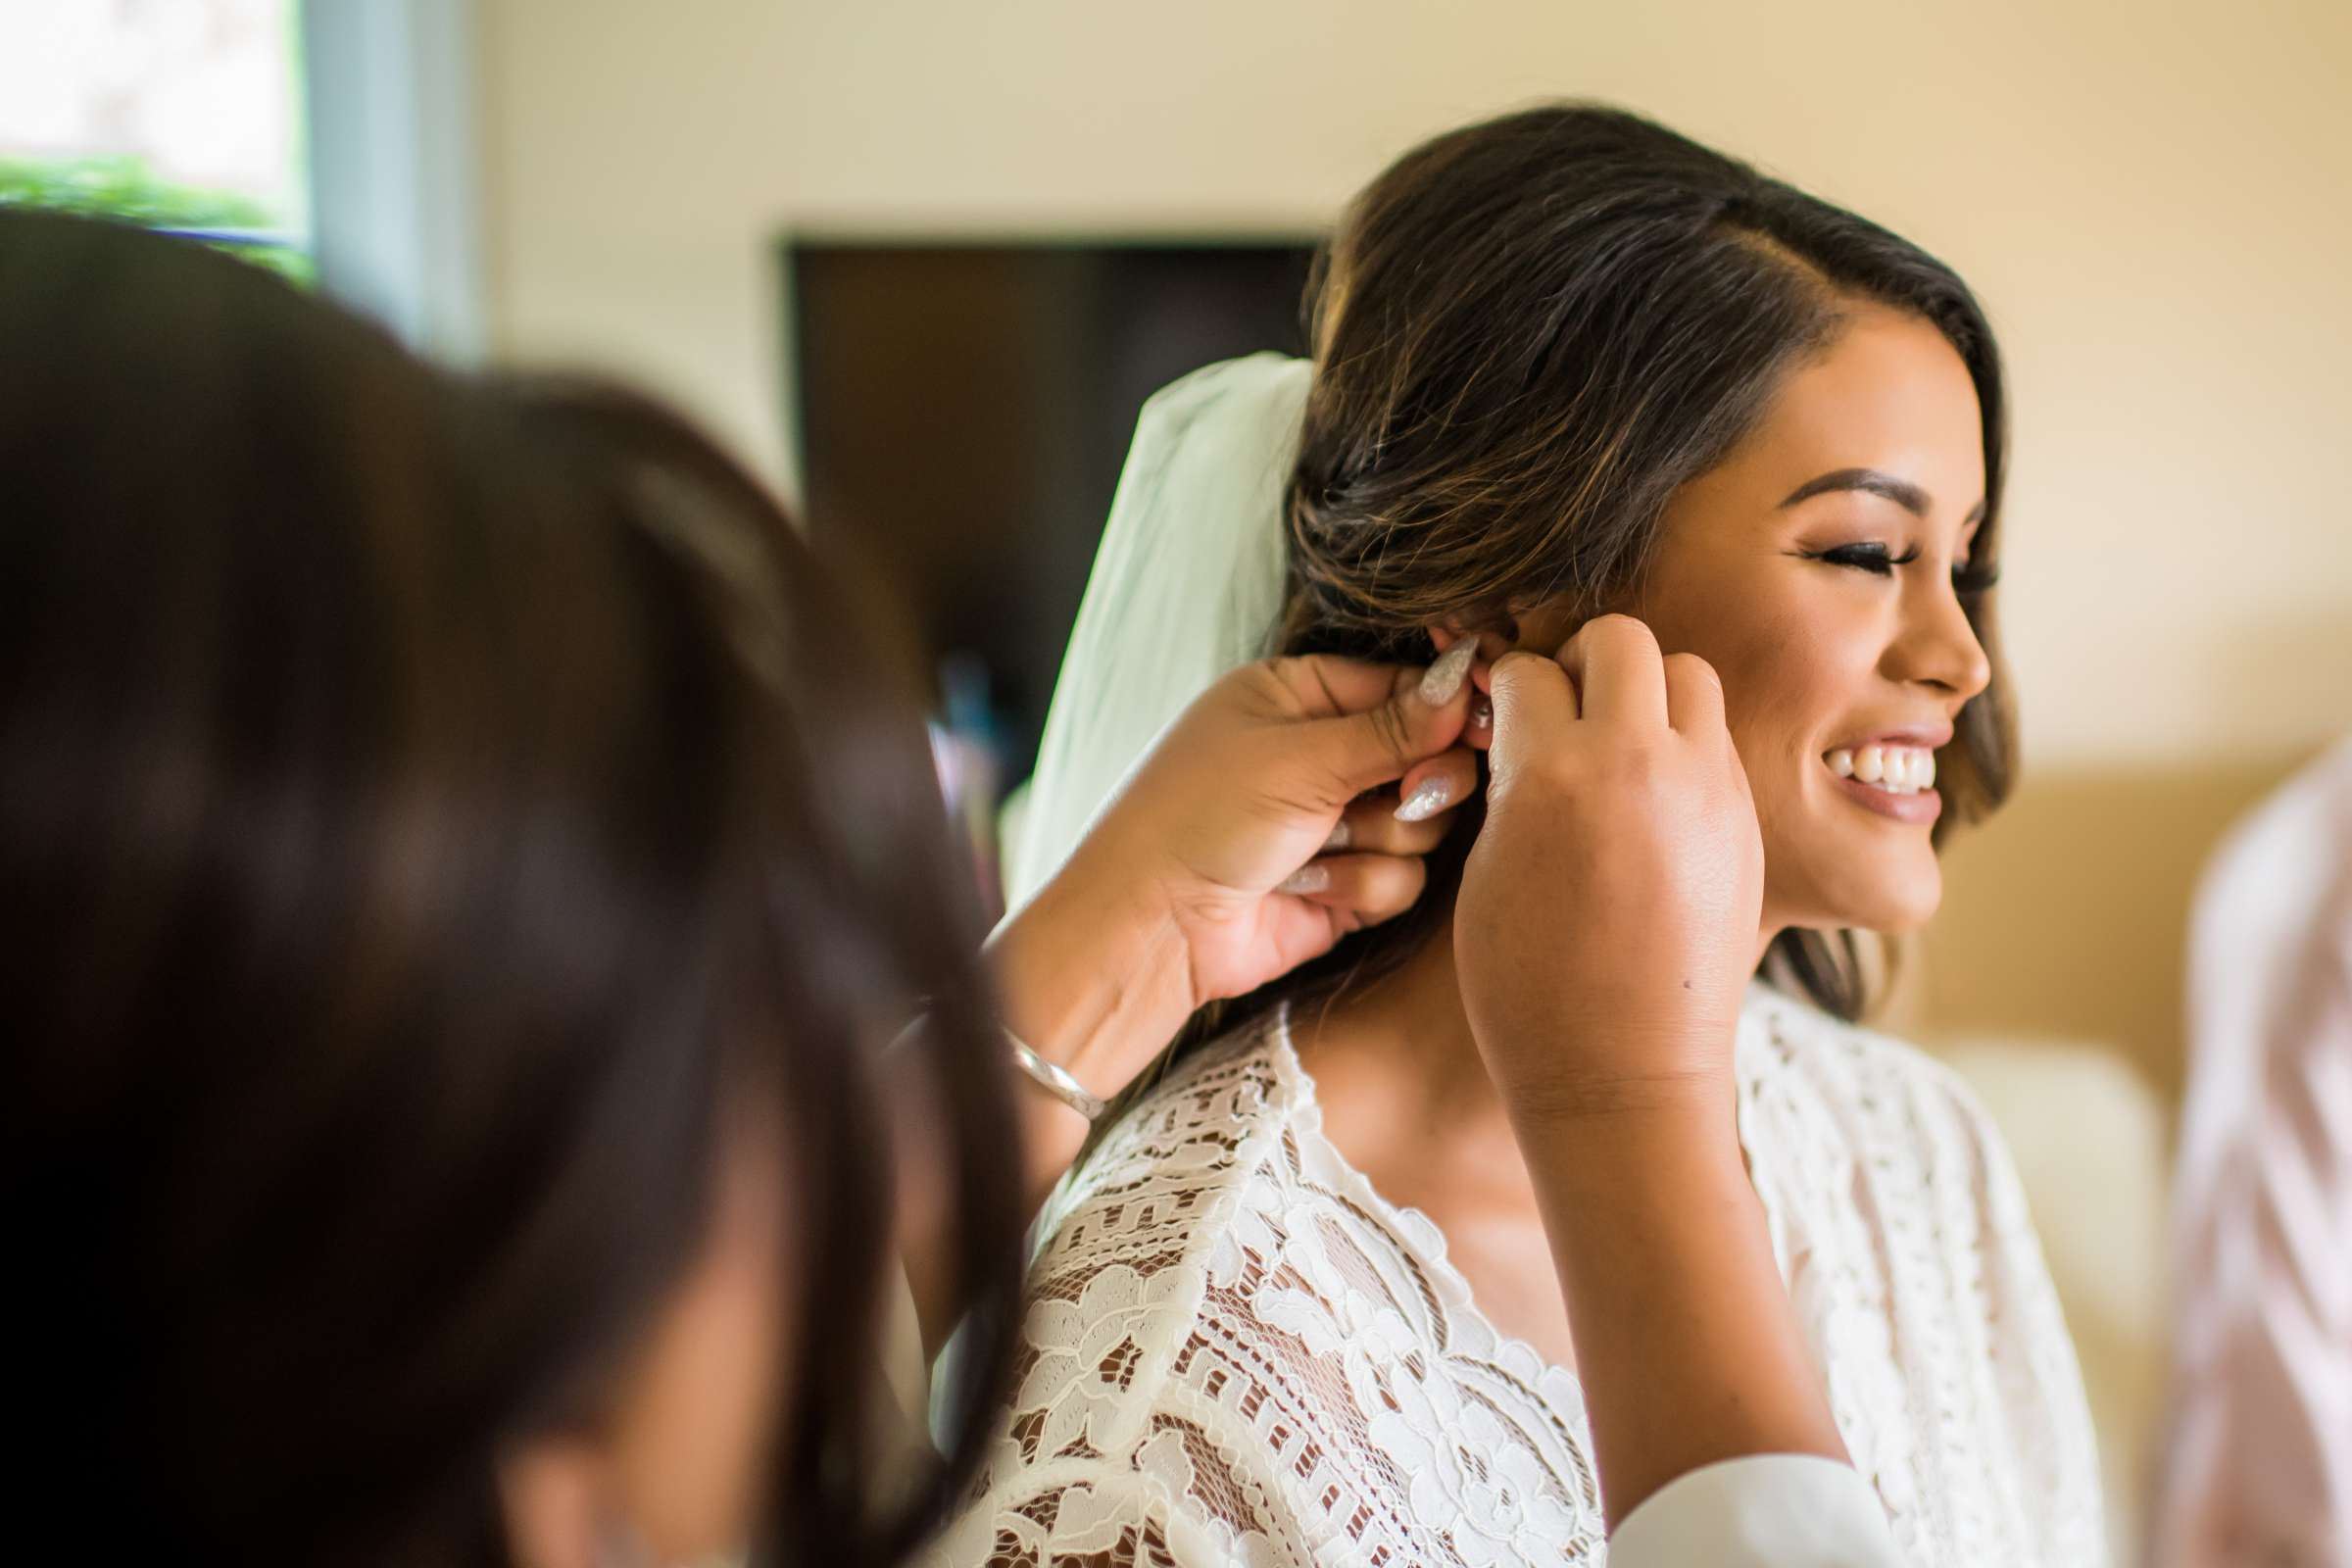 Scripps Seaside Forum Wedding coordinated by Lavish Weddings, Cindy and Justin Wedding Photo #381787 by True Photography